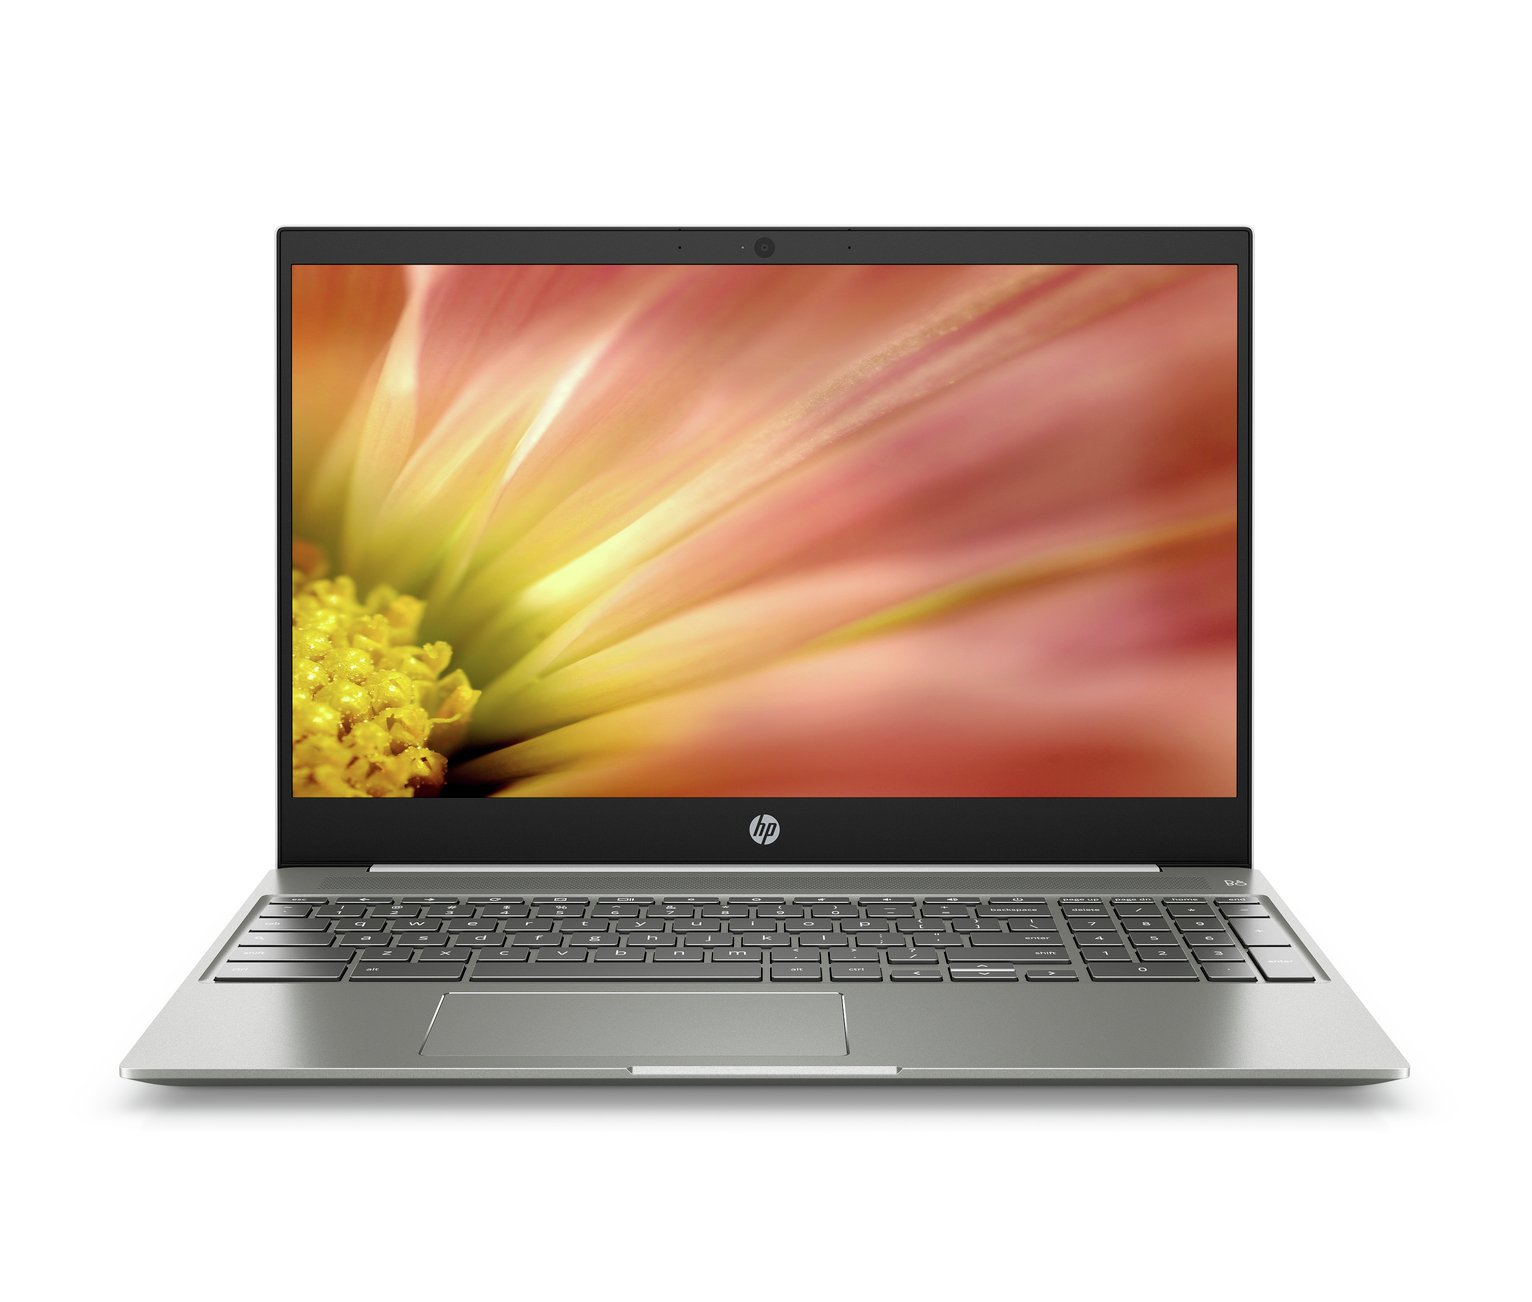 HP 15.6 Inch i5 8GB 128GB FHD Chromebook - White